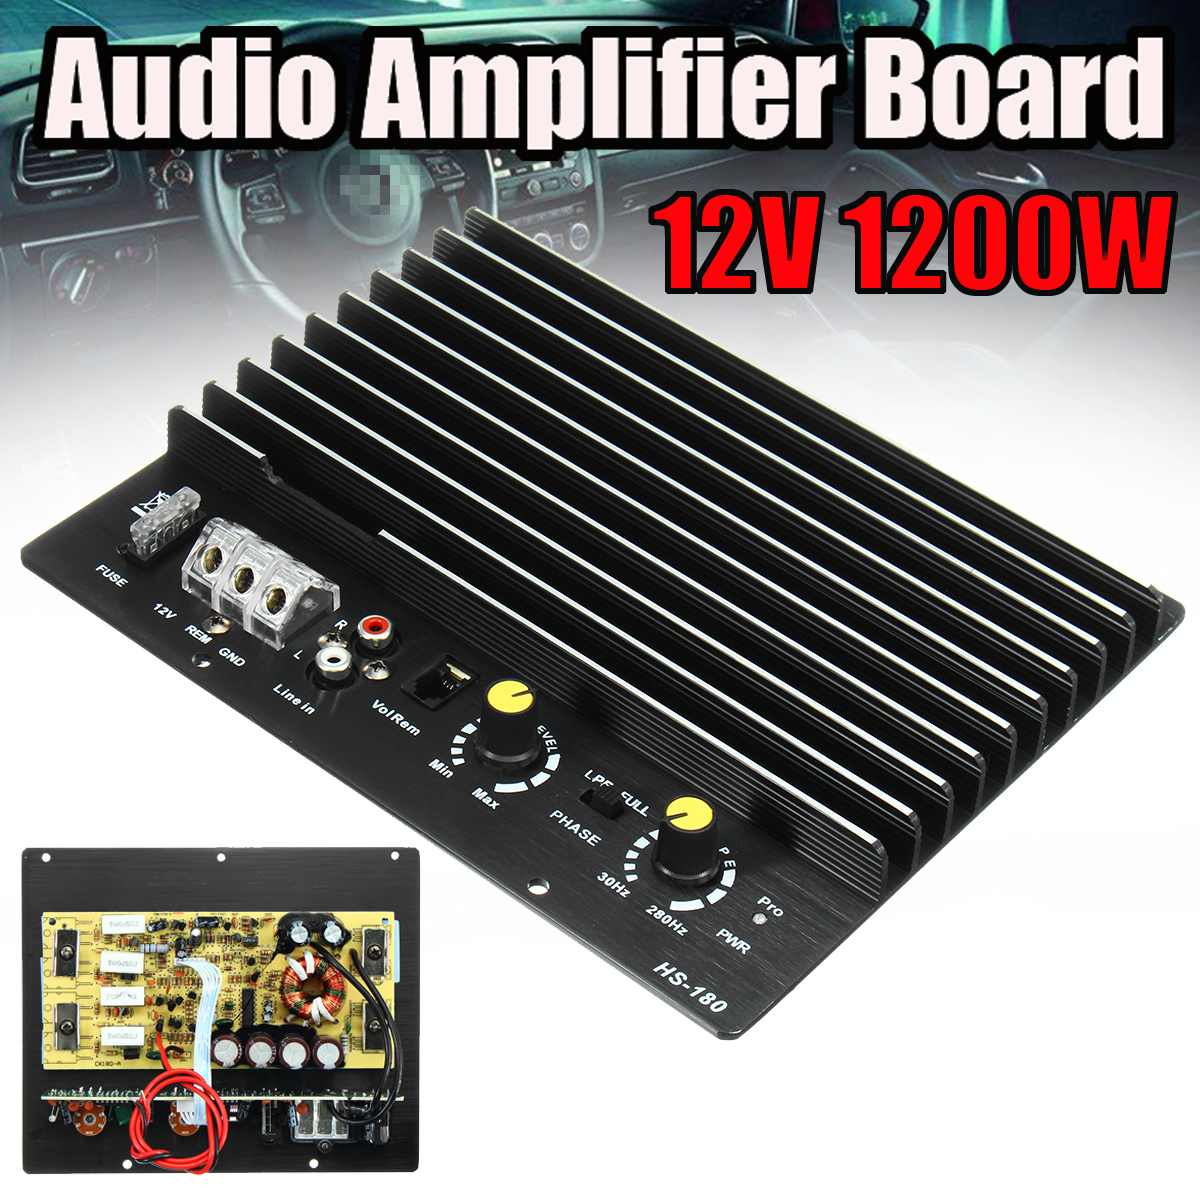 12V 1200W 100A <font><b>Car</b></font> <font><b>Audio</b></font> Power <font><b>Amplifier</b></font> Subwoofer Powerful Bass <font><b>Car</b></font> <font><b>Amplifier</b></font> Board <font><b>DIY</b></font> Amp Board for Auto <font><b>Car</b></font> Player image